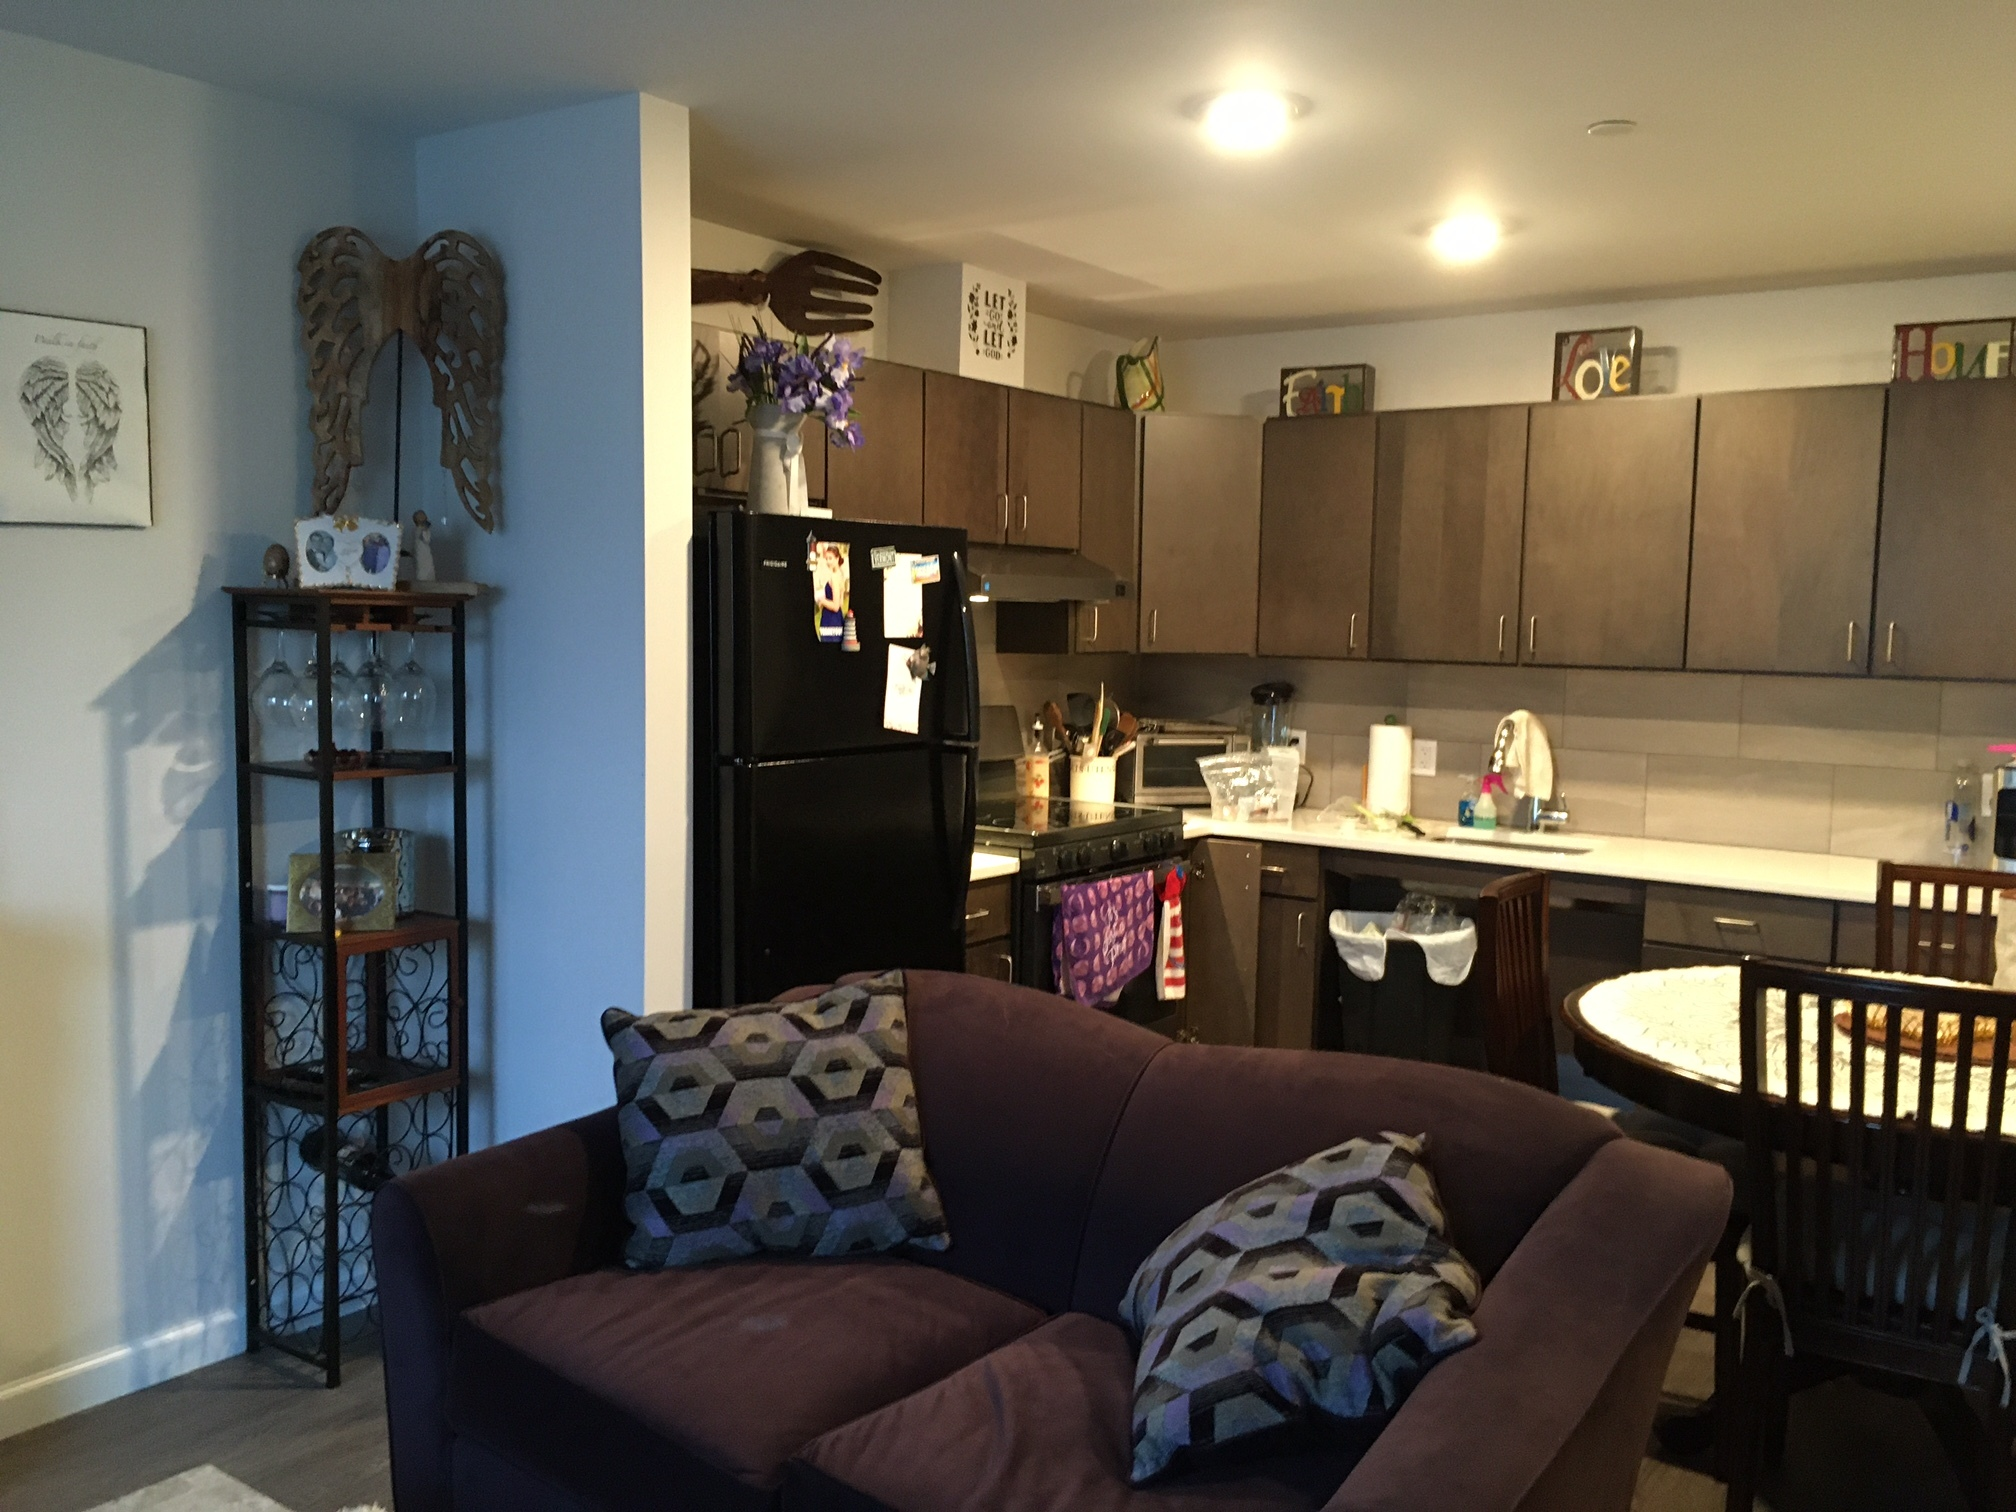 A cozy great room accommodates living and dining room and kitchen uses.